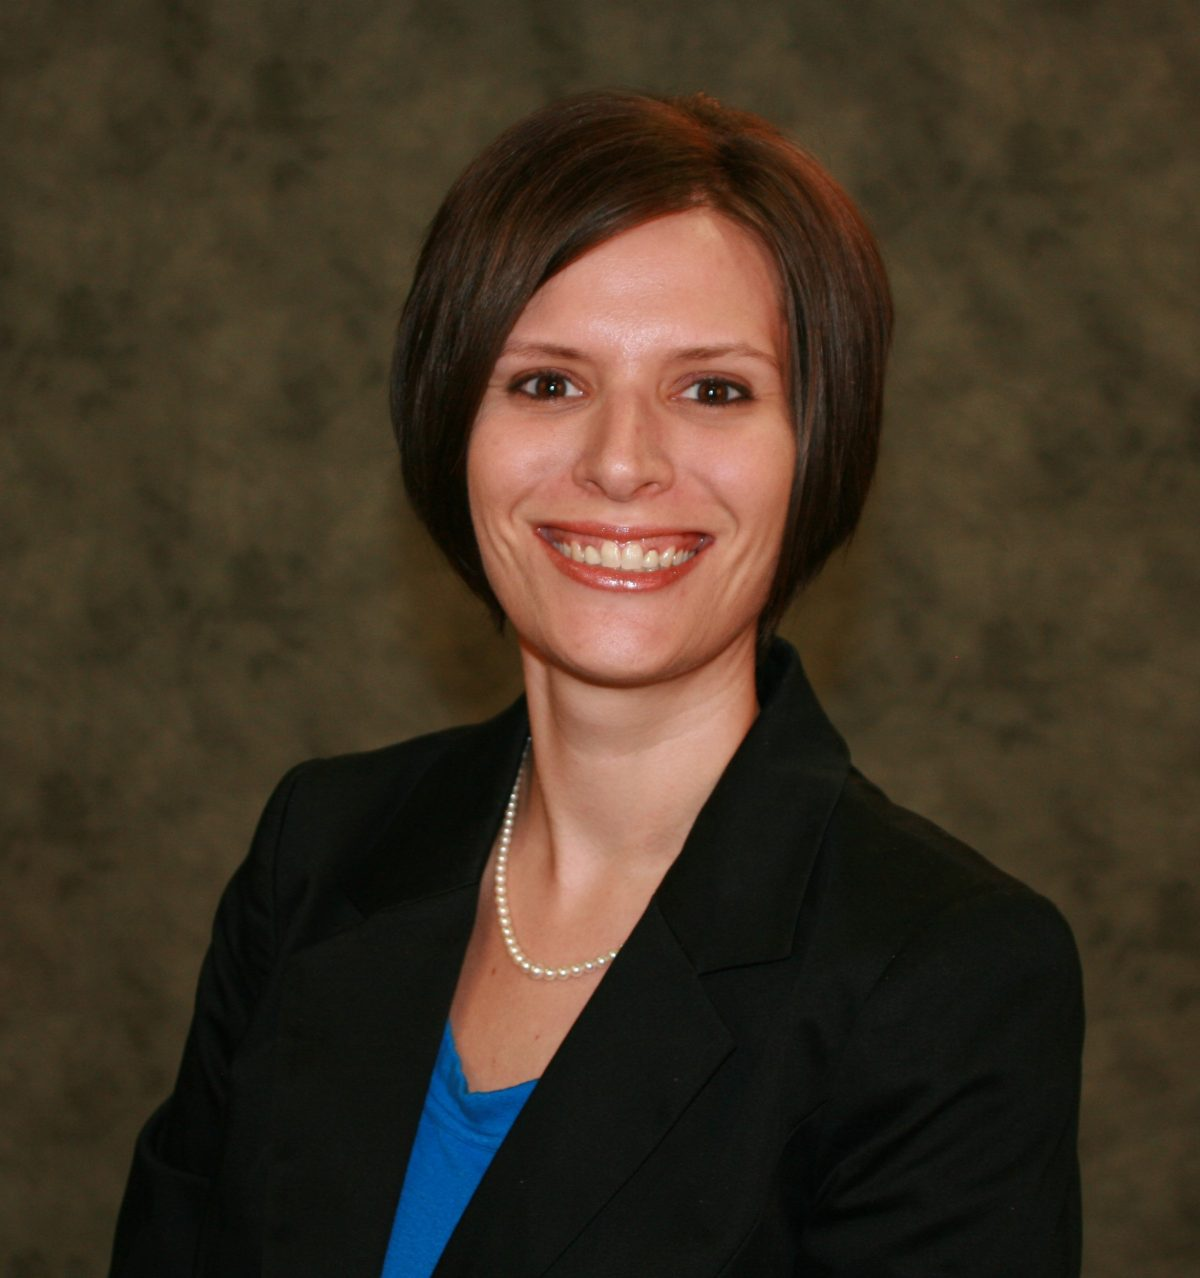 Sarah Couture is the Florida State Deputy Director at the Fines and Fees Justice Center.